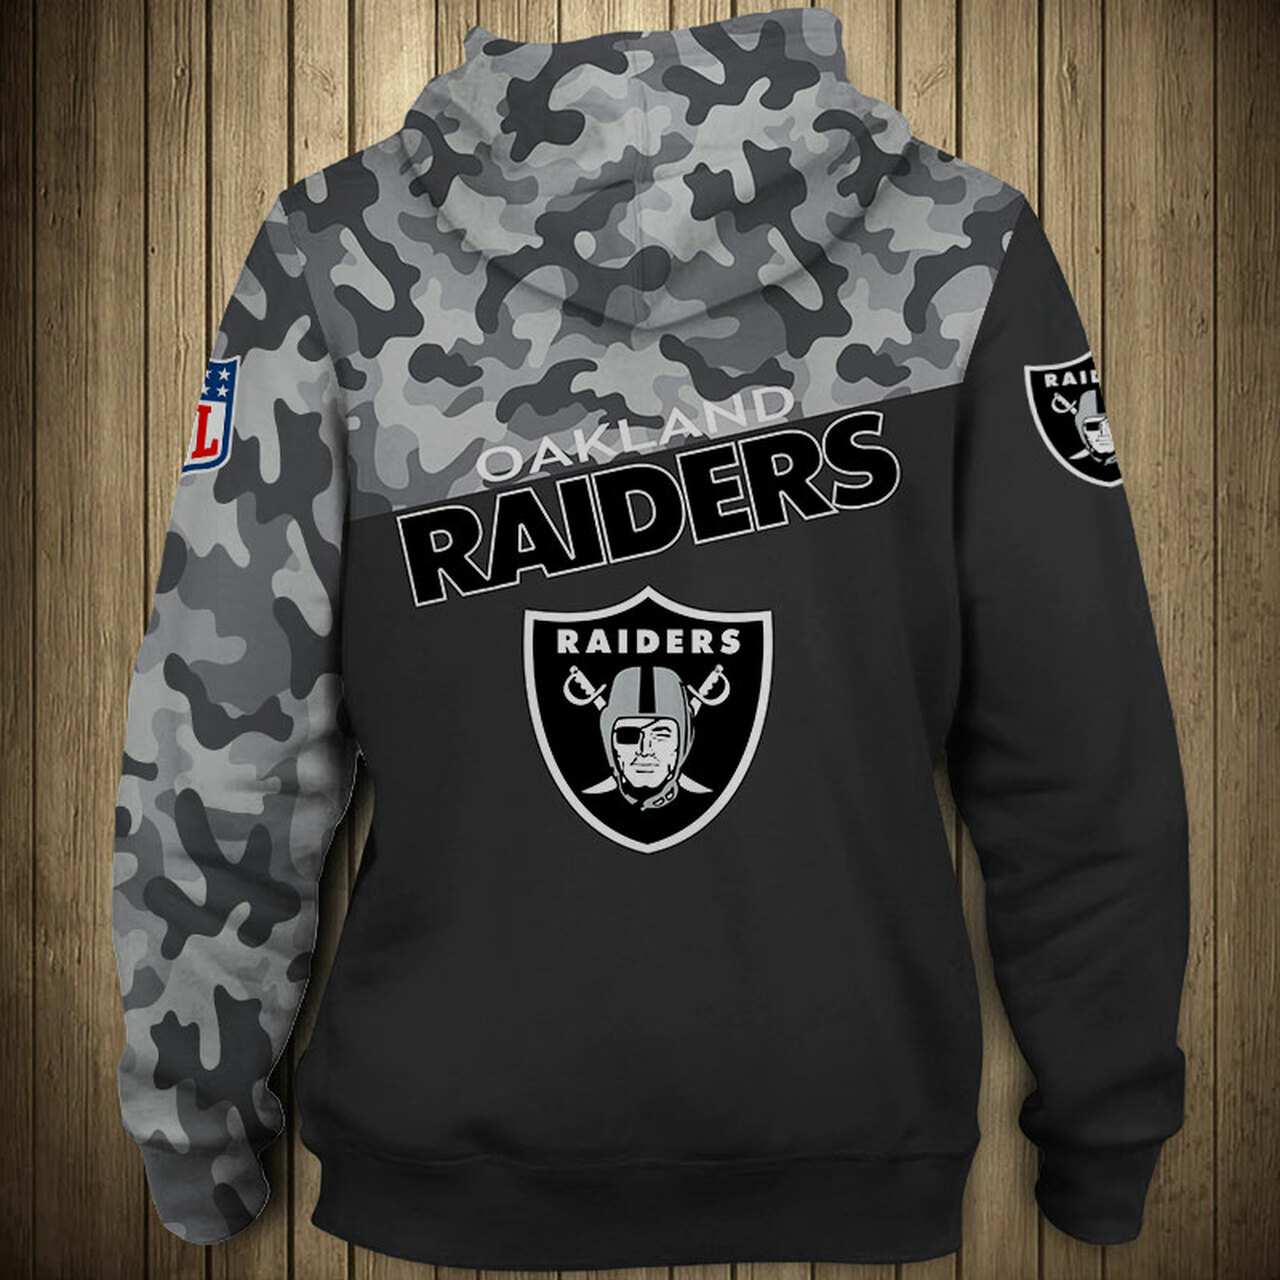 **(OFFICIAL-N.F.L.OAKLAND-RAIDERS-CAMO.DESIGN-PULLOVER-HOODIES/3D-CUSTOM-RAIDERS-LOGOS & OFFICIAL-RAIDERS-TEAM-COLORS/NICE-3D-DETAILED-GRAPHIC-PRINTED-DOUBLE-SIDED/ALL-OVER-ENTIRE-HOODIE-PRINTED-DESIGN/WARM-PREMIUM-N.F.L.RAIDERS-PULLOVER-HOODIES)**